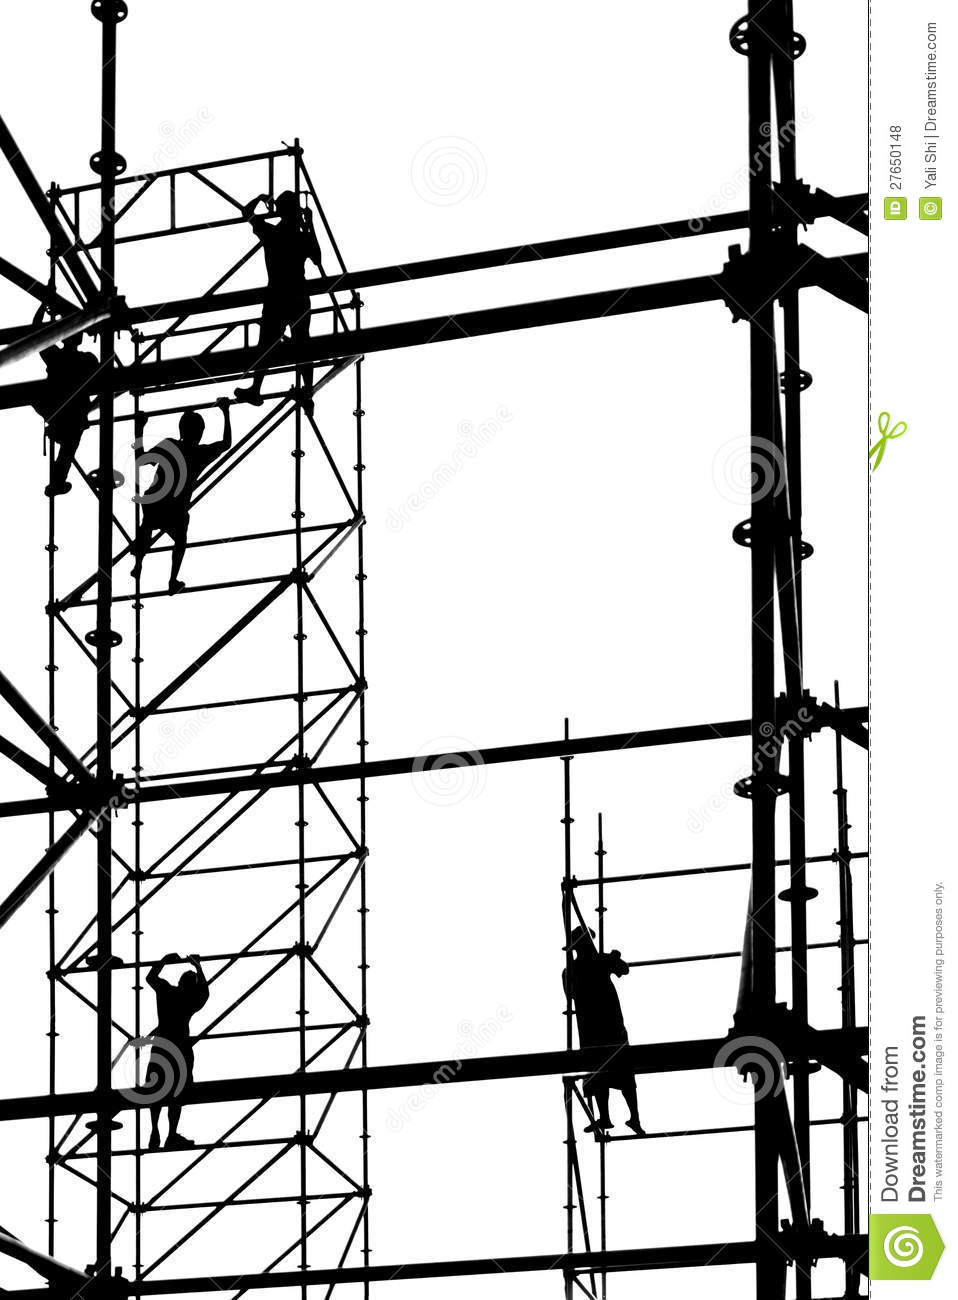 Workers High Up On Scaffolding Stock Photo Image 27650148